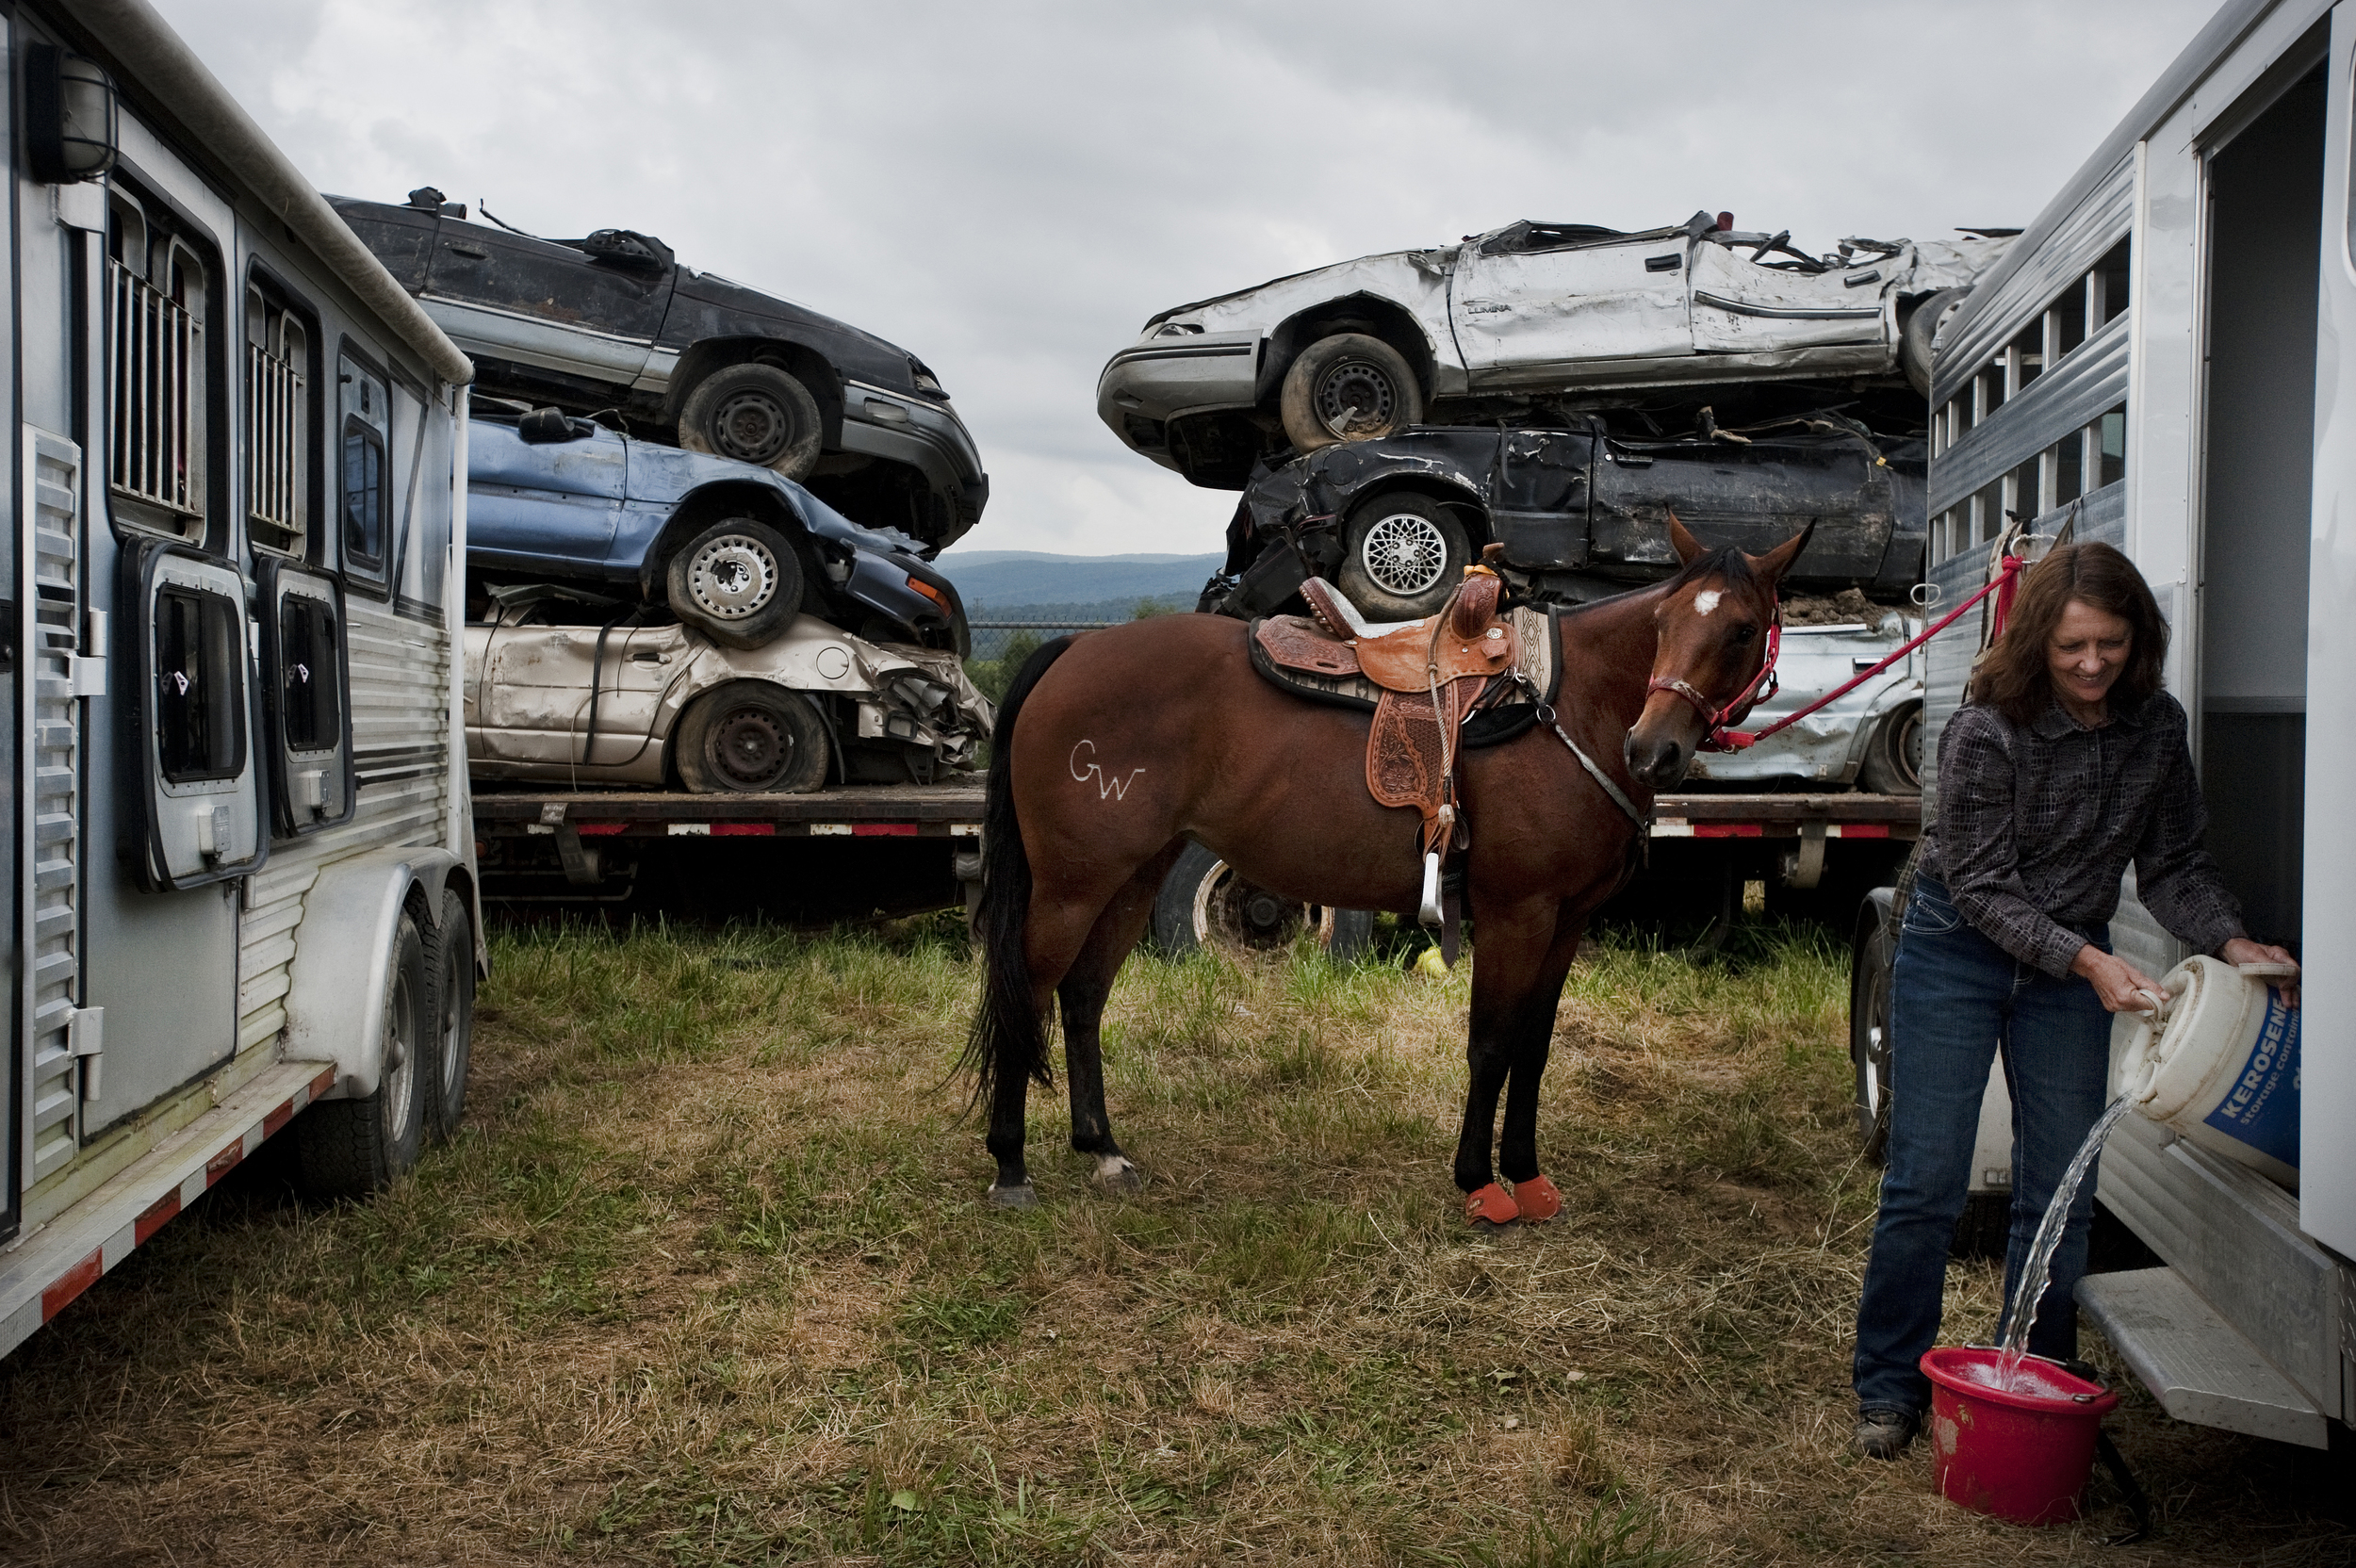 Demolished cars make for an unusual backdrop for 6-year-old horse Macy as owner Doreen Ulery of Bullskin cares for her before a rodeo at the Fayette County Fair on Thursday, Aug. 6, 2015 in Dunbar.